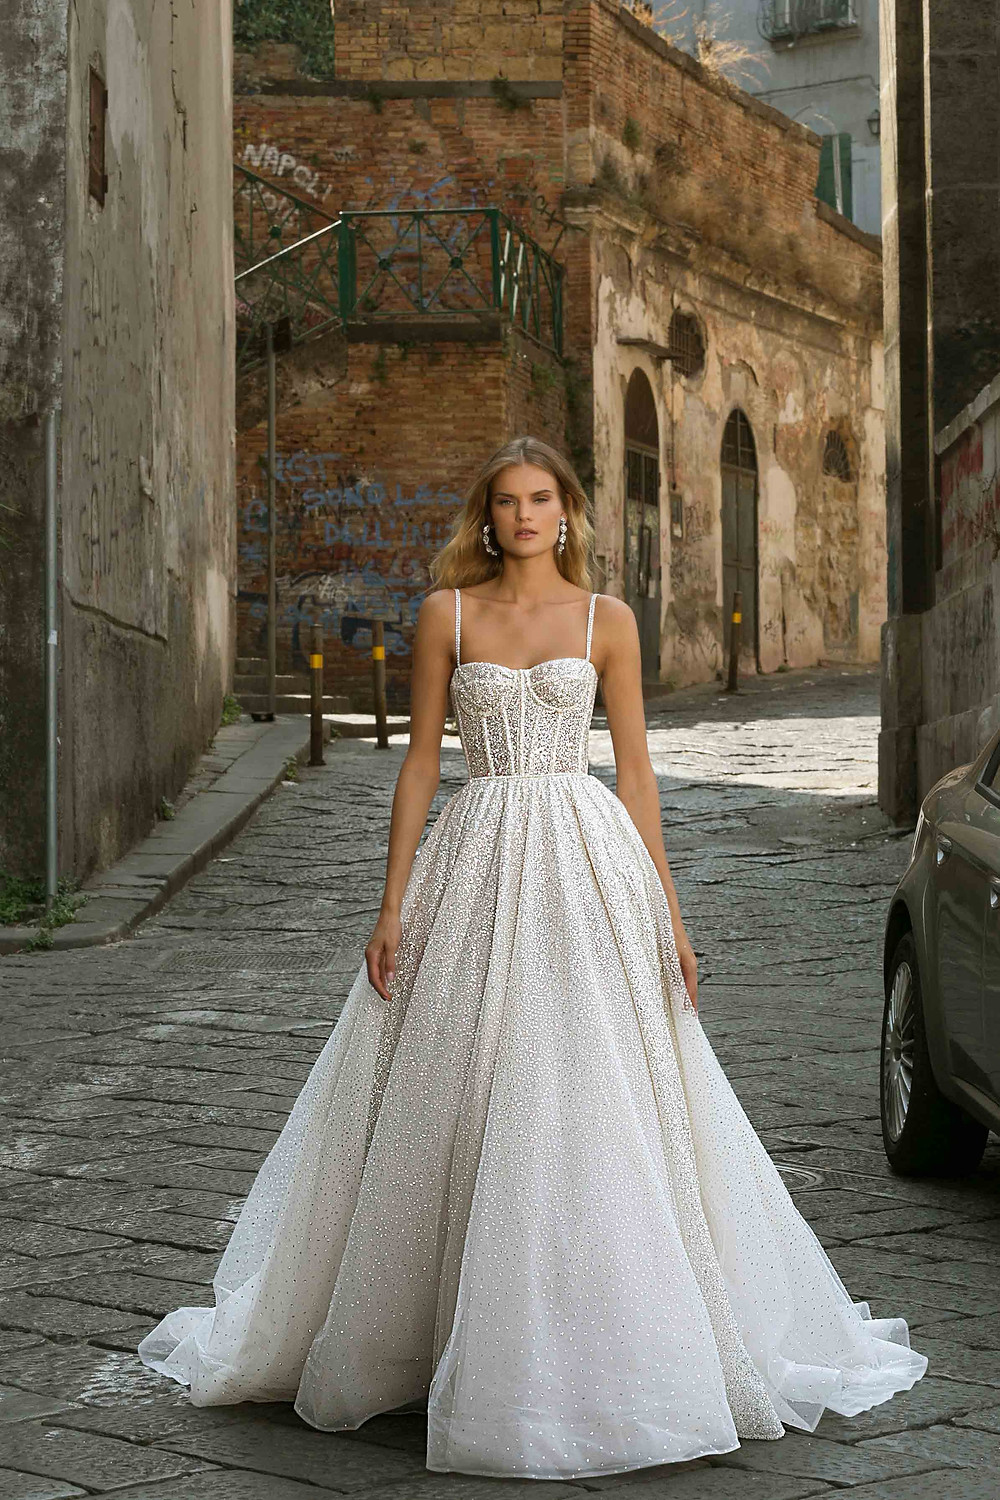 A Berta 2020 sparkly ball gown wedding dress, with corset top, thin straps and crystals